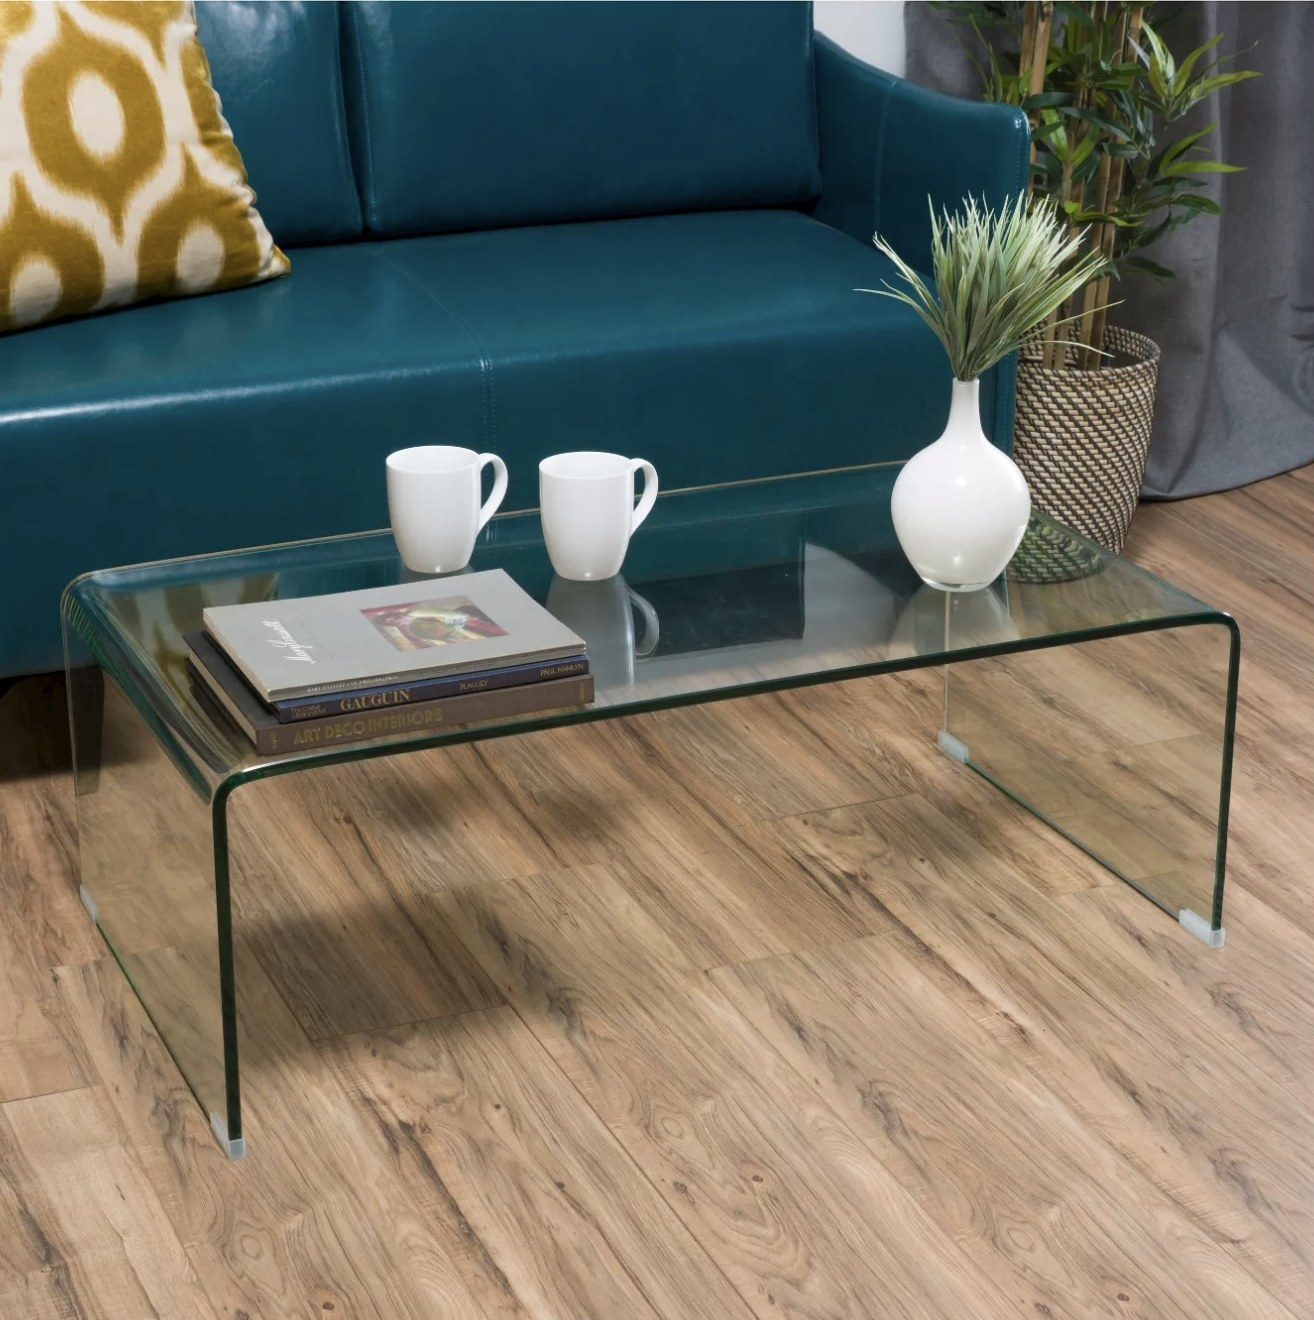 A rectangle glass coffee table sits in front of a blue couch in a living room with decor on top of it